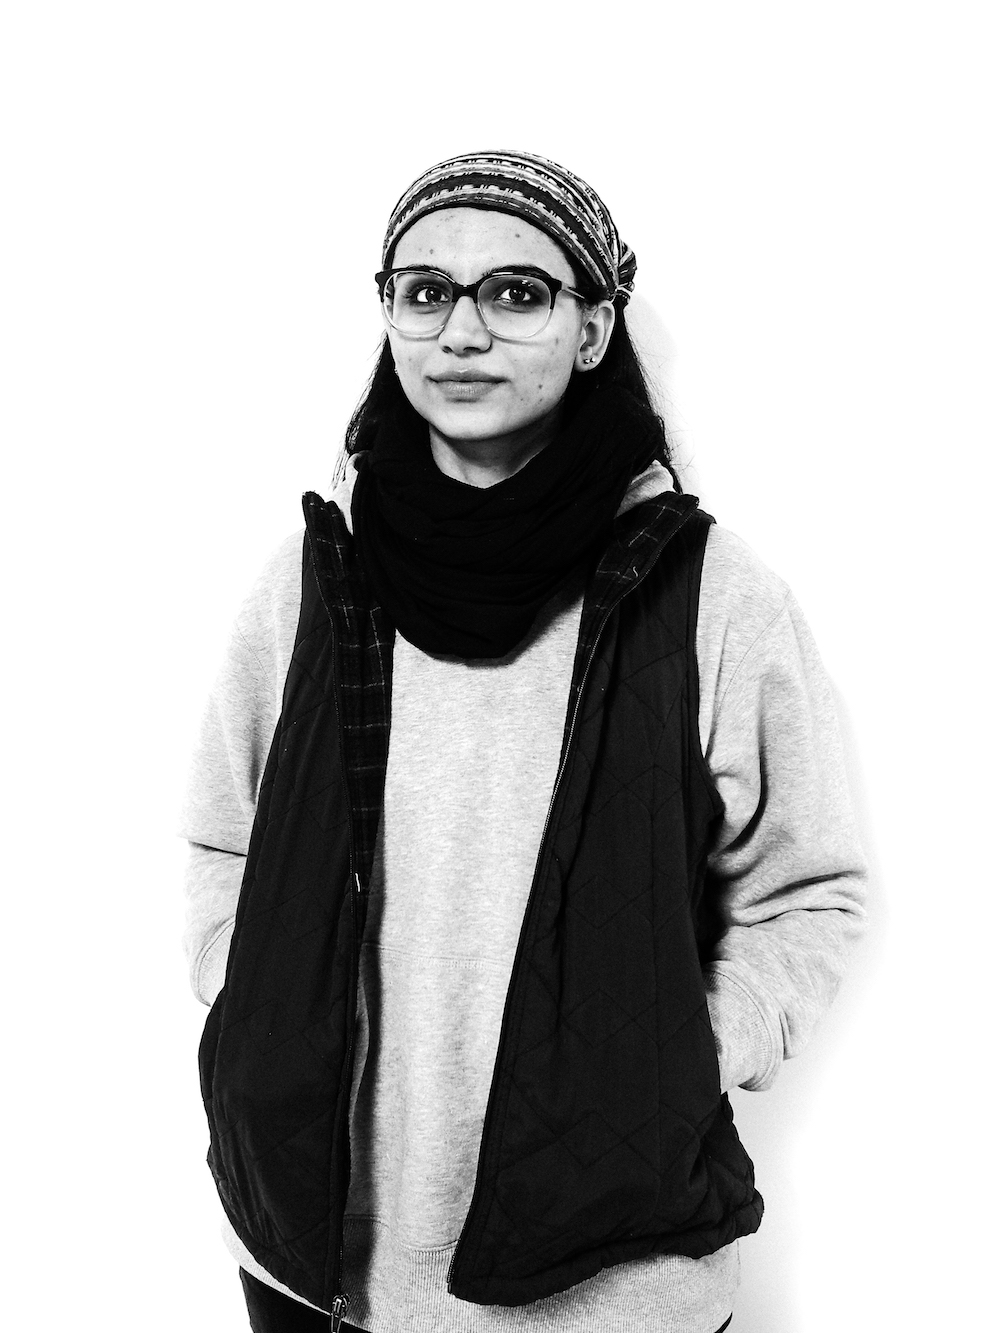 Sobia Ahmad - Muslim CohortSponsor: IM WISESobia Ahmad is an interdisciplinary artist whose work explores themes of identity and belonging through concepts of dichotomy and duality - ideas of the permissible and forbidden, revealing and concealing, public and private, purity and impurity, freedom and oppression. Often inspired by her personal experiences of being an immigrant, a Muslim, and a female in the U.S., her work is an investigation of both individual and collective experiences shaped by sociopolitical ideologies. Ahmad's work has been included in the Sadat Art for Peace permanent collection, and has been displayed in the Washington D.C. metro area, in Los Angeles at the Craft and Folk Art Museum, and in several other cities including Chicago, Seattle, and London.www.sobiaahmad.com Instagram: @sobia.ahmad.art